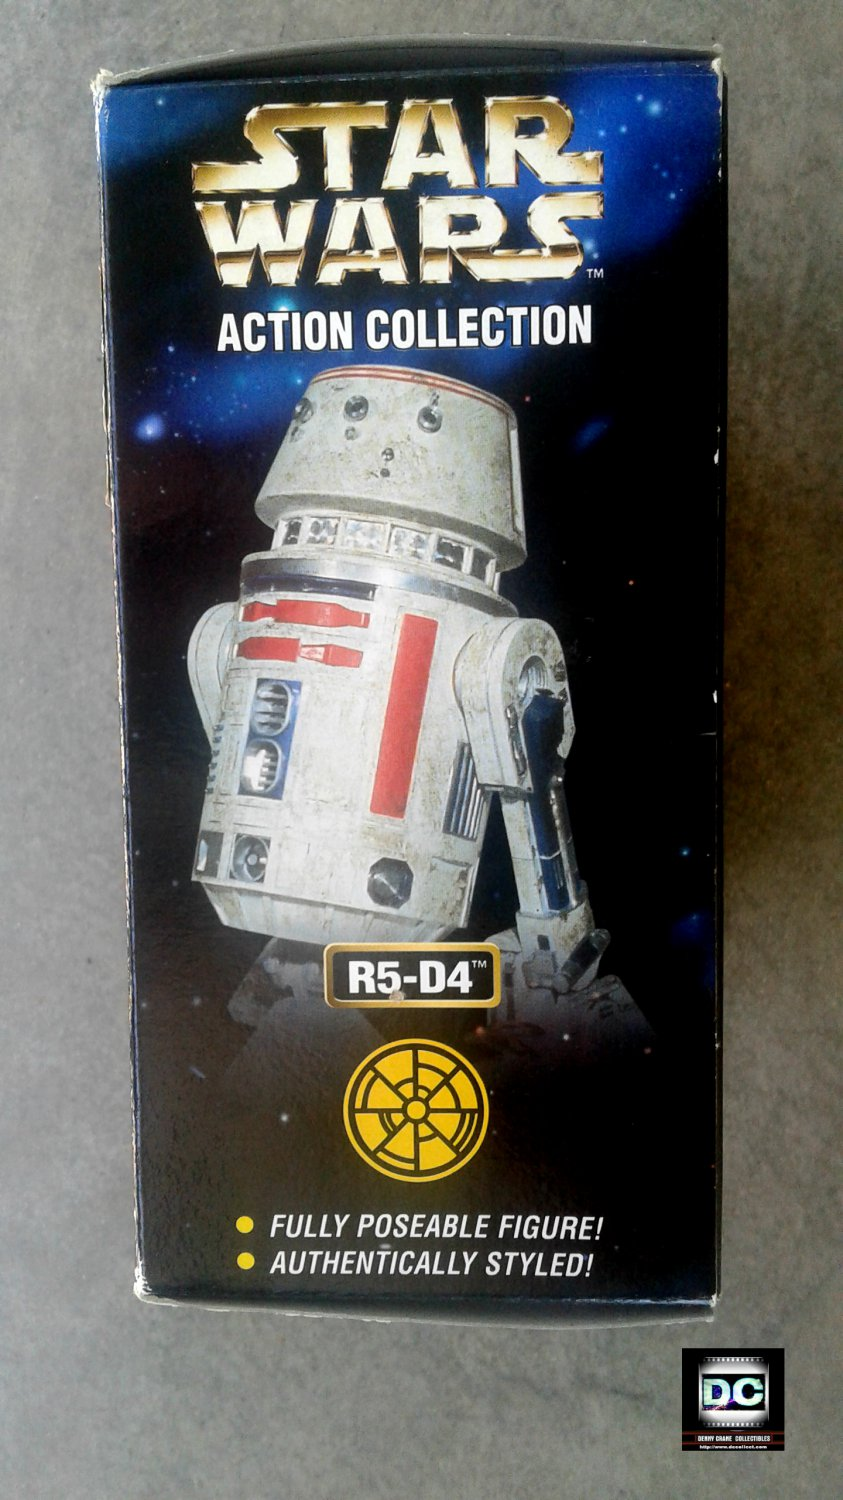 Star Wars 6 inch R5-D4 1/6 Scale Figure for Sideshow � 12in Kenner Action Collection 1998 POTF2